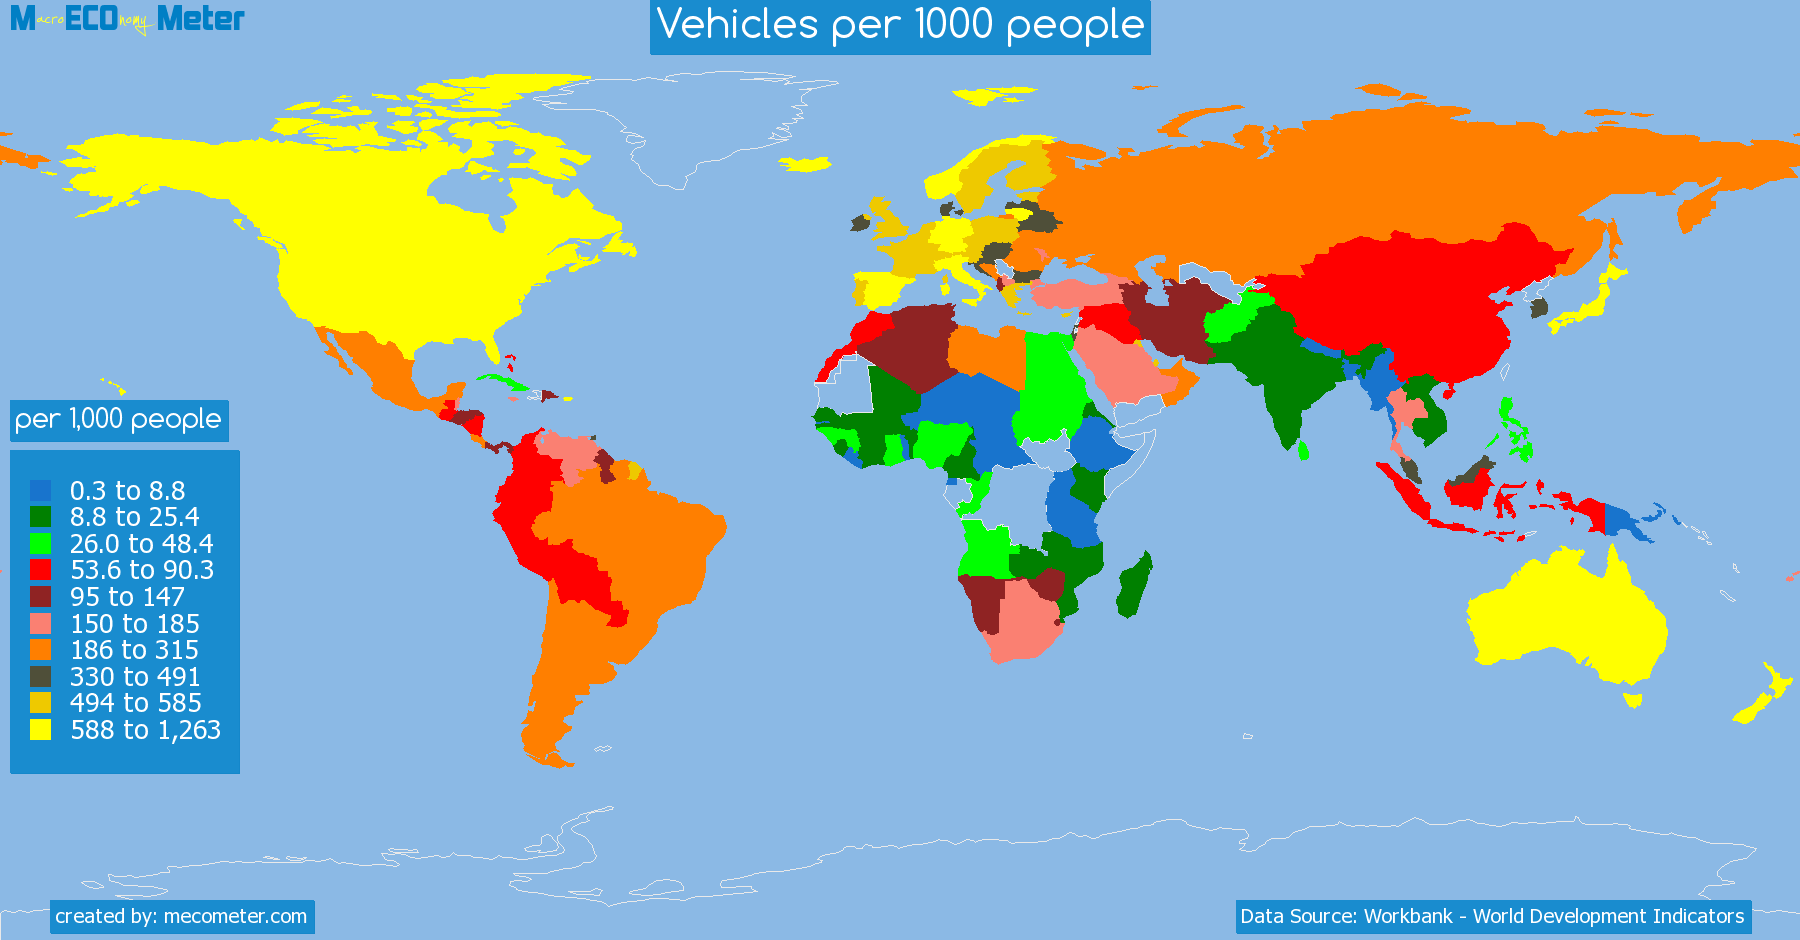 vehicles-per-thousand-people.png